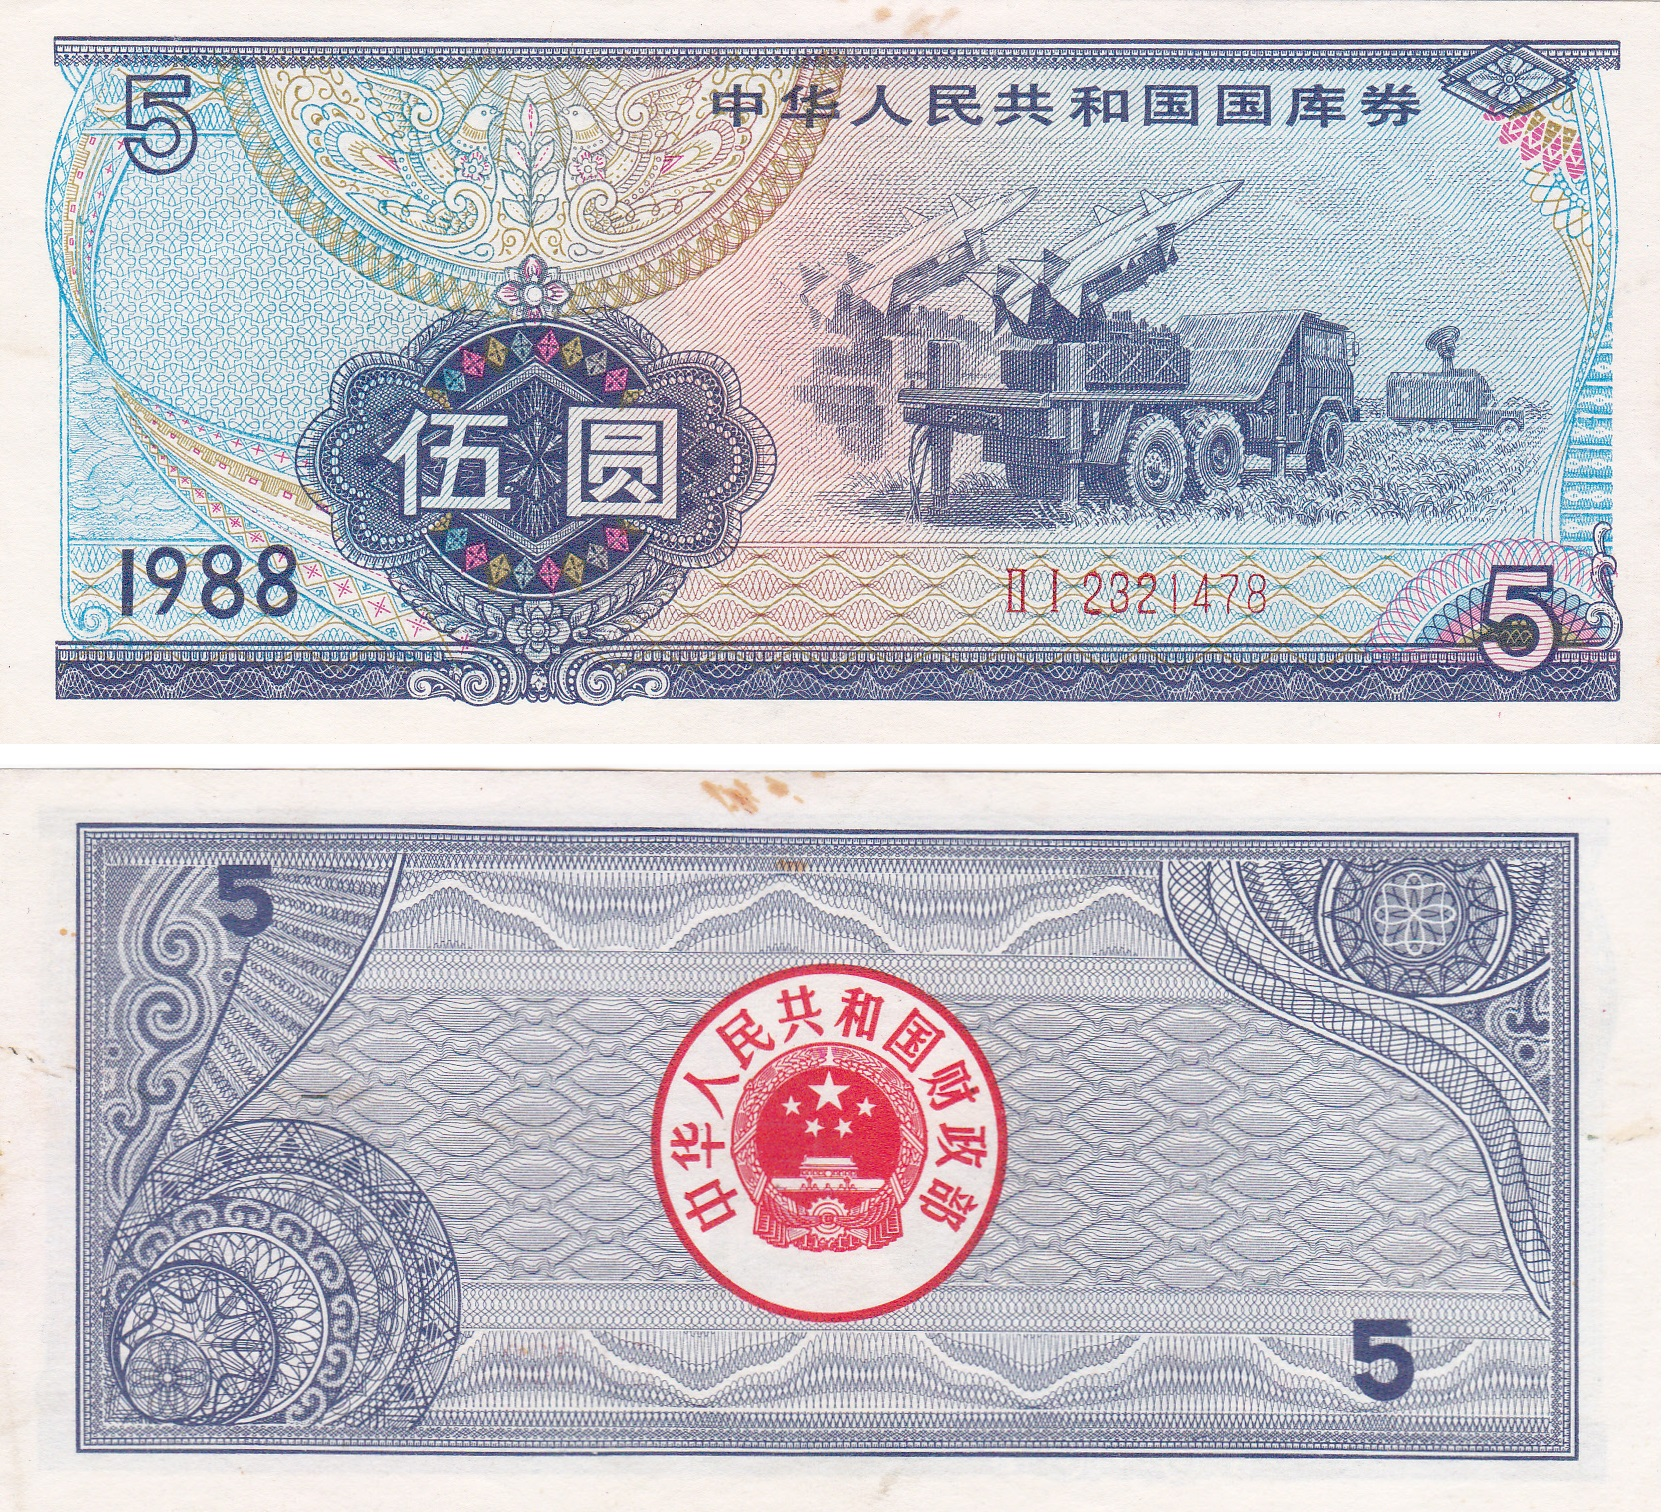 B7061, Treasury Bond of P.R.China, Five Yuan (5 Dollars Loan) 1988